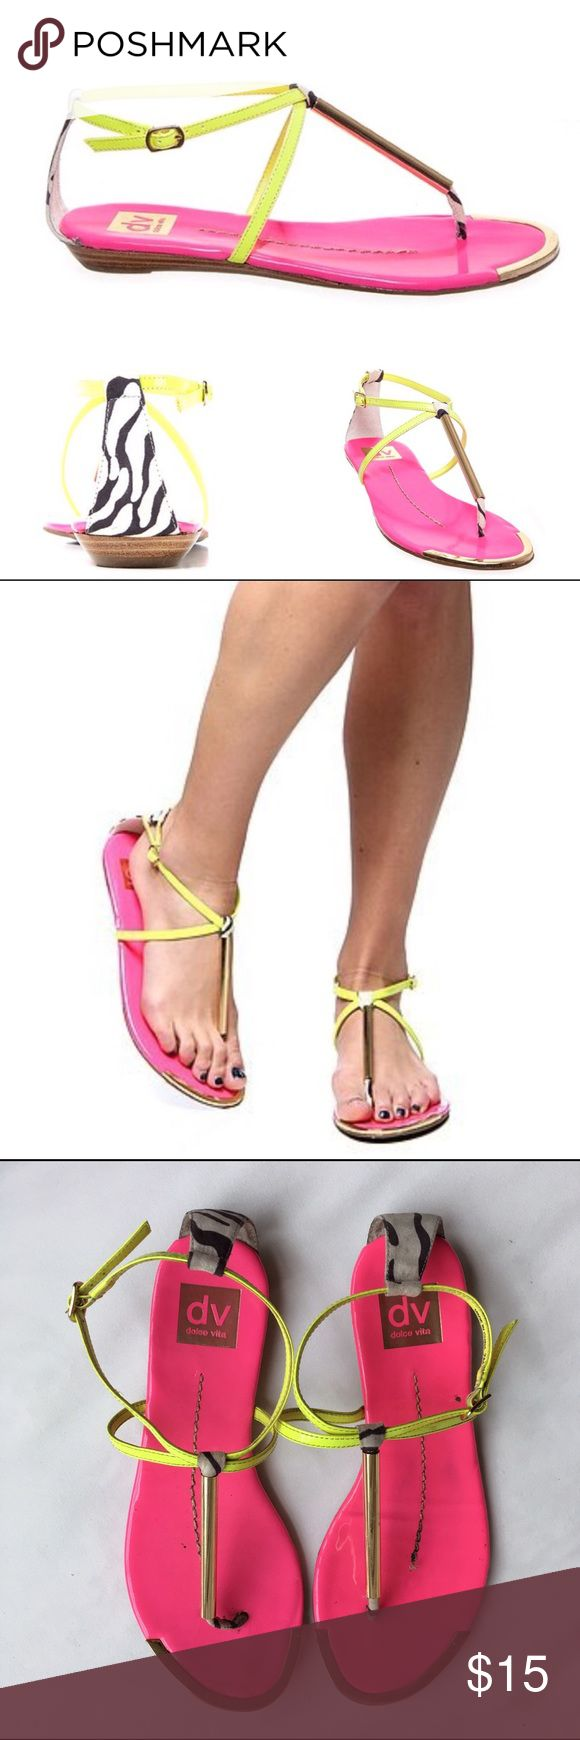 "DV by Dolce Vita Neon Sandals Electric neon yellow straps with neon pink insoles.  Zebra print on back and thong with gold tone detail. Very tiny .5"" wedge. Adjustable straps.  Worn several times.  The bottoms are backs are a little dirty.  Please refer to pictures. DV by Dolce Vita Shoes Sandals"